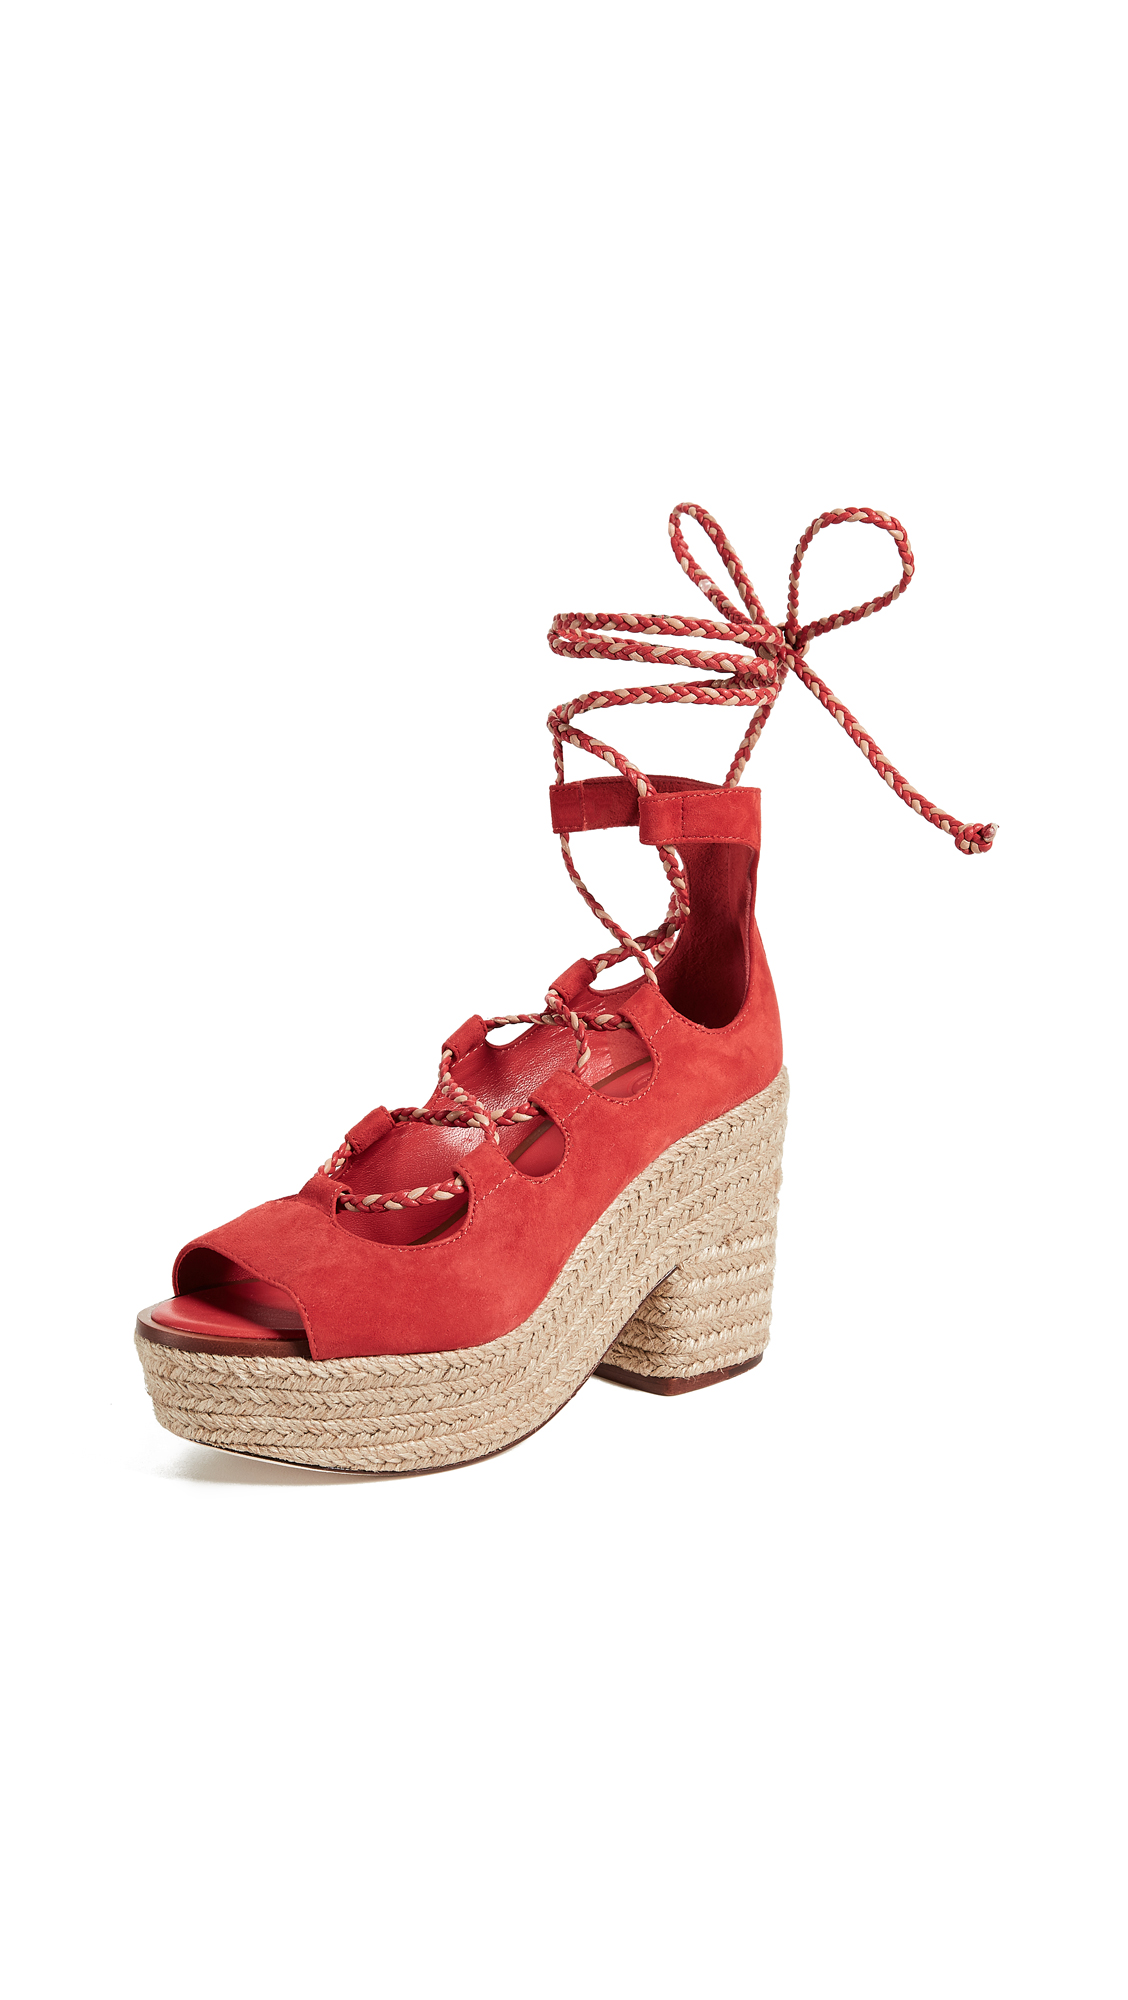 Tory Burch Positano Platform Espadrilles - Poppy Orange